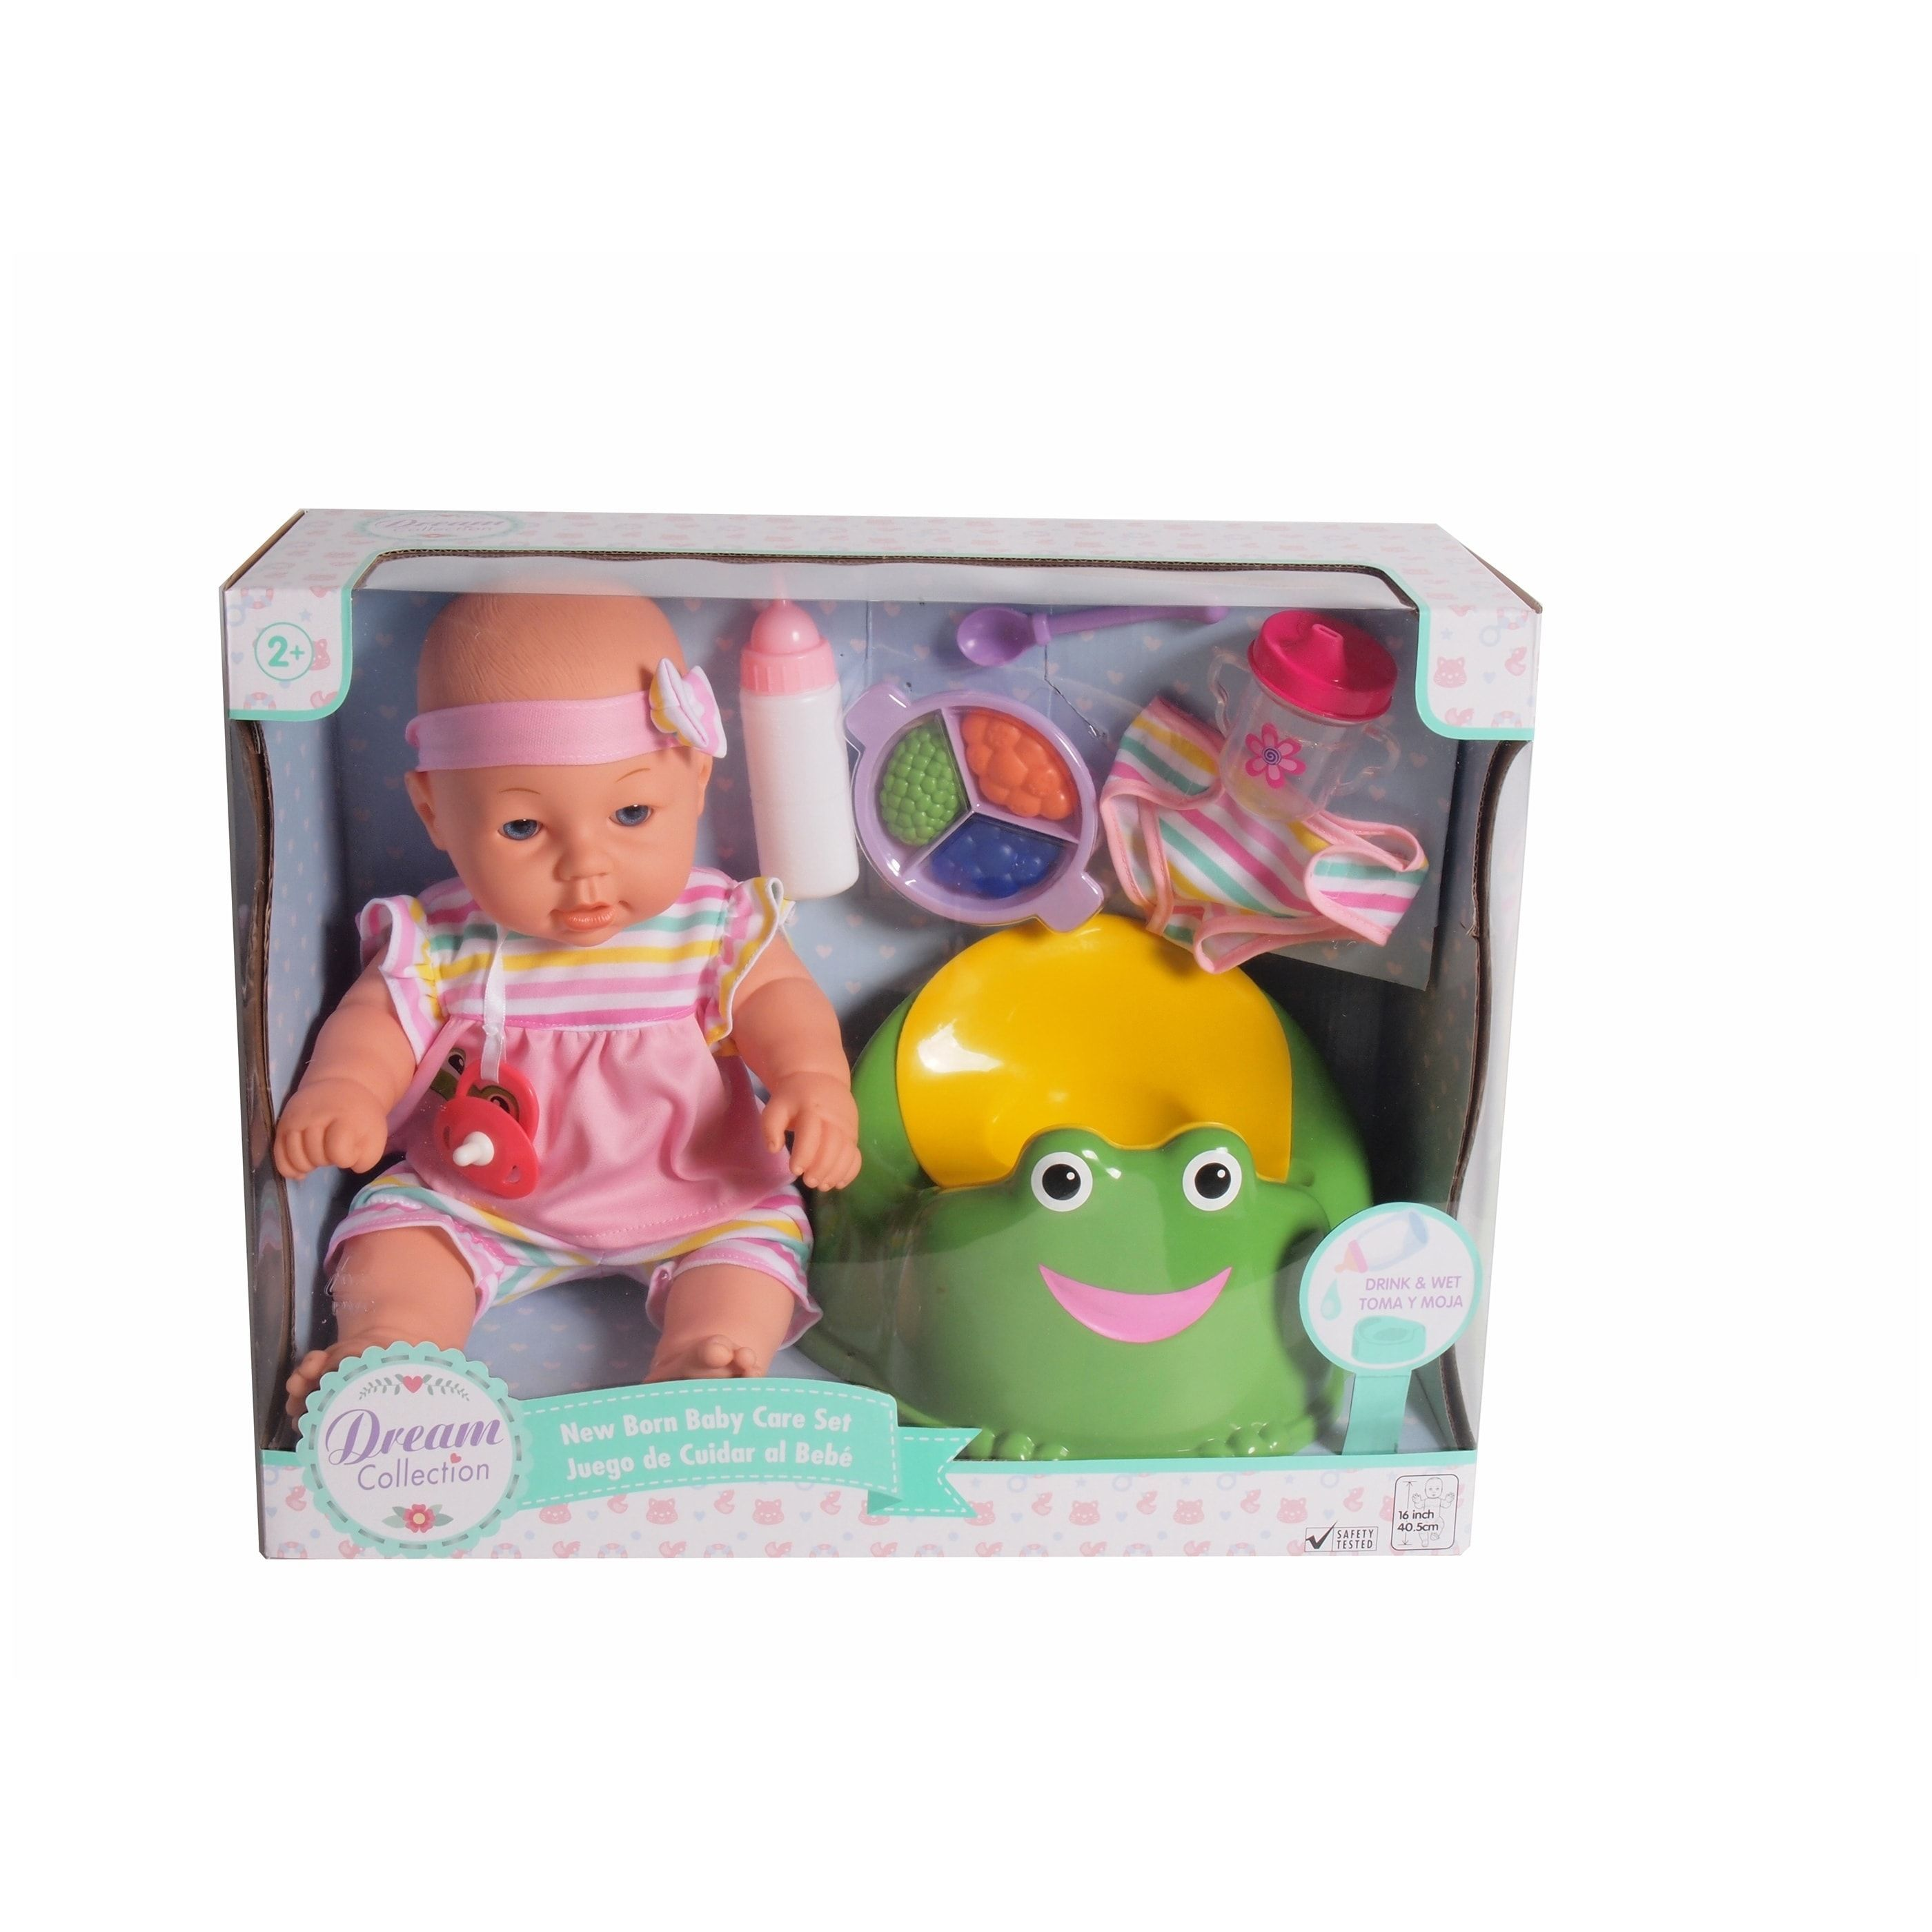 Dream Collection 16 Pretend Play Baby Doll Care Set with Potty & Accessories #dollcare Dream Collection 16 Pretend Play Baby Doll Care Set with Potty & Accessories #dollcare